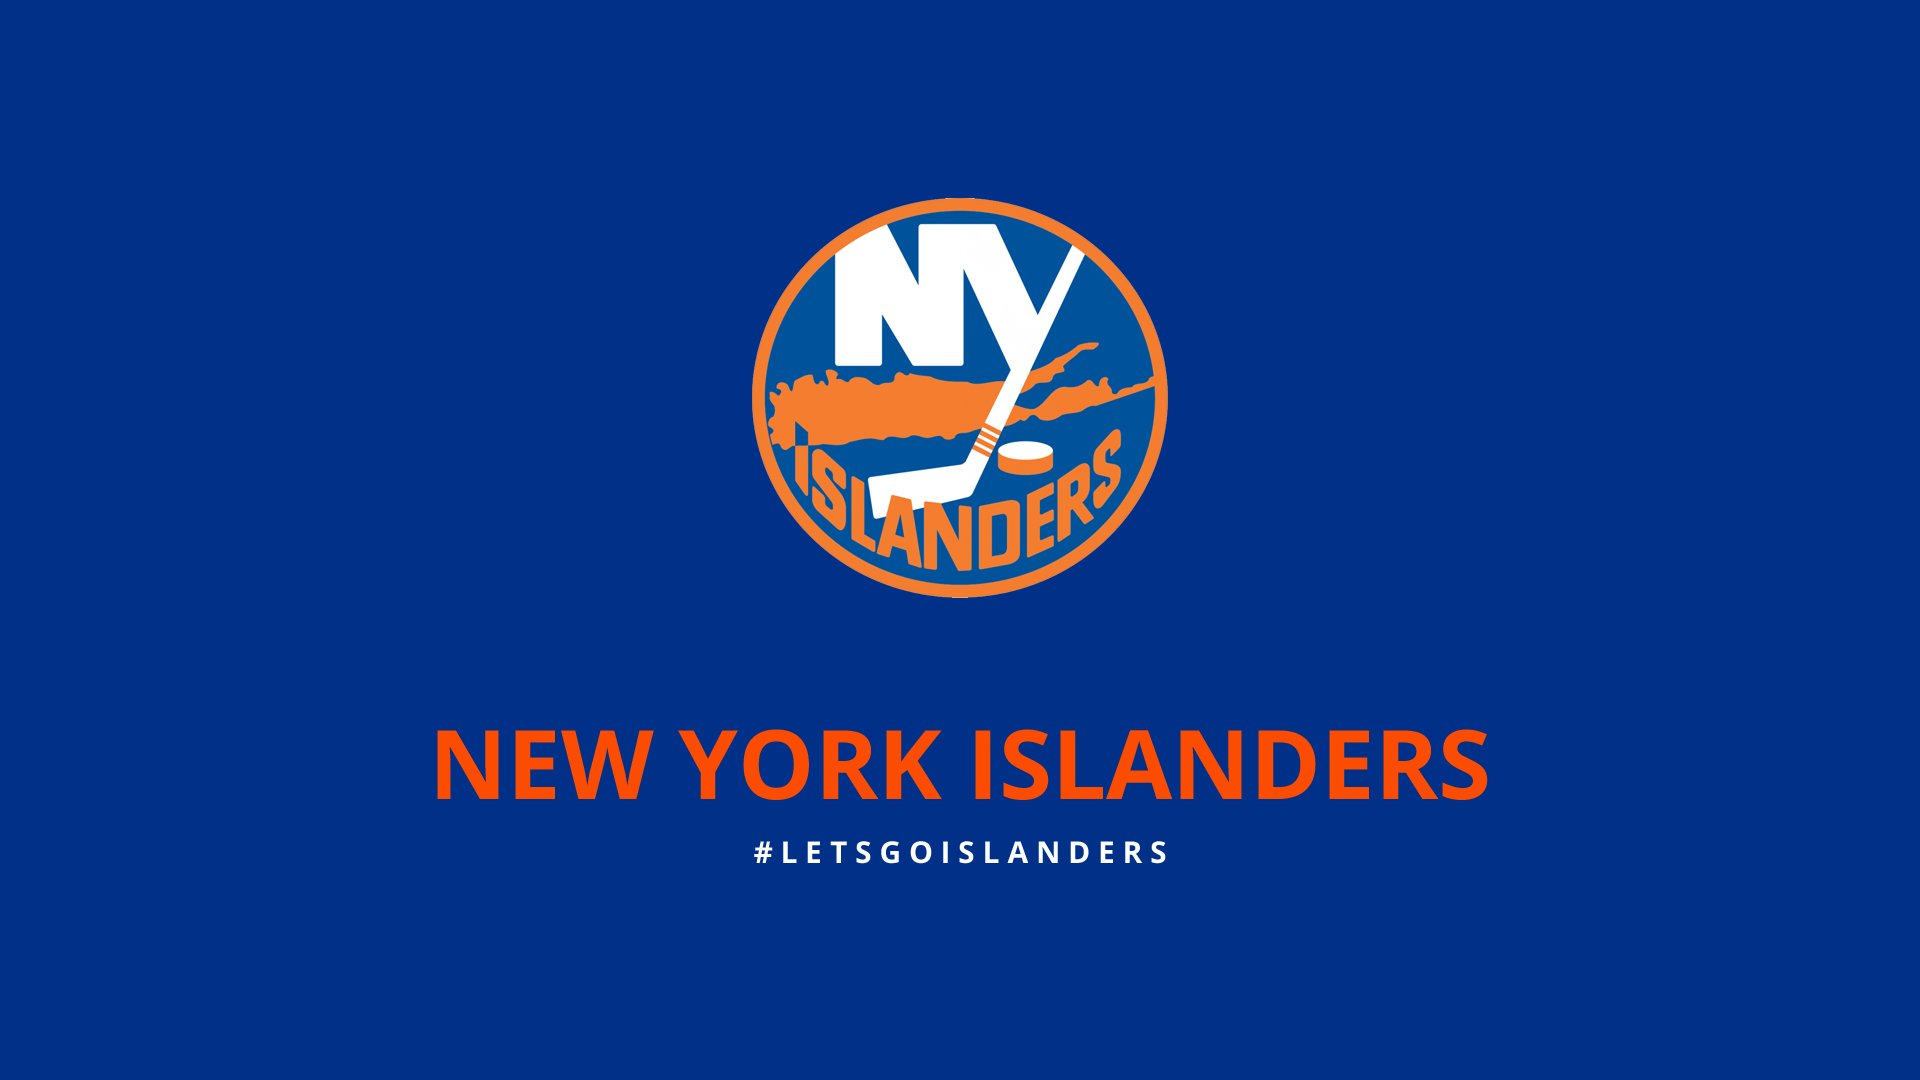 NEW YORK ISLANDERS hockey nhl 3 wallpaper background 1920x1080